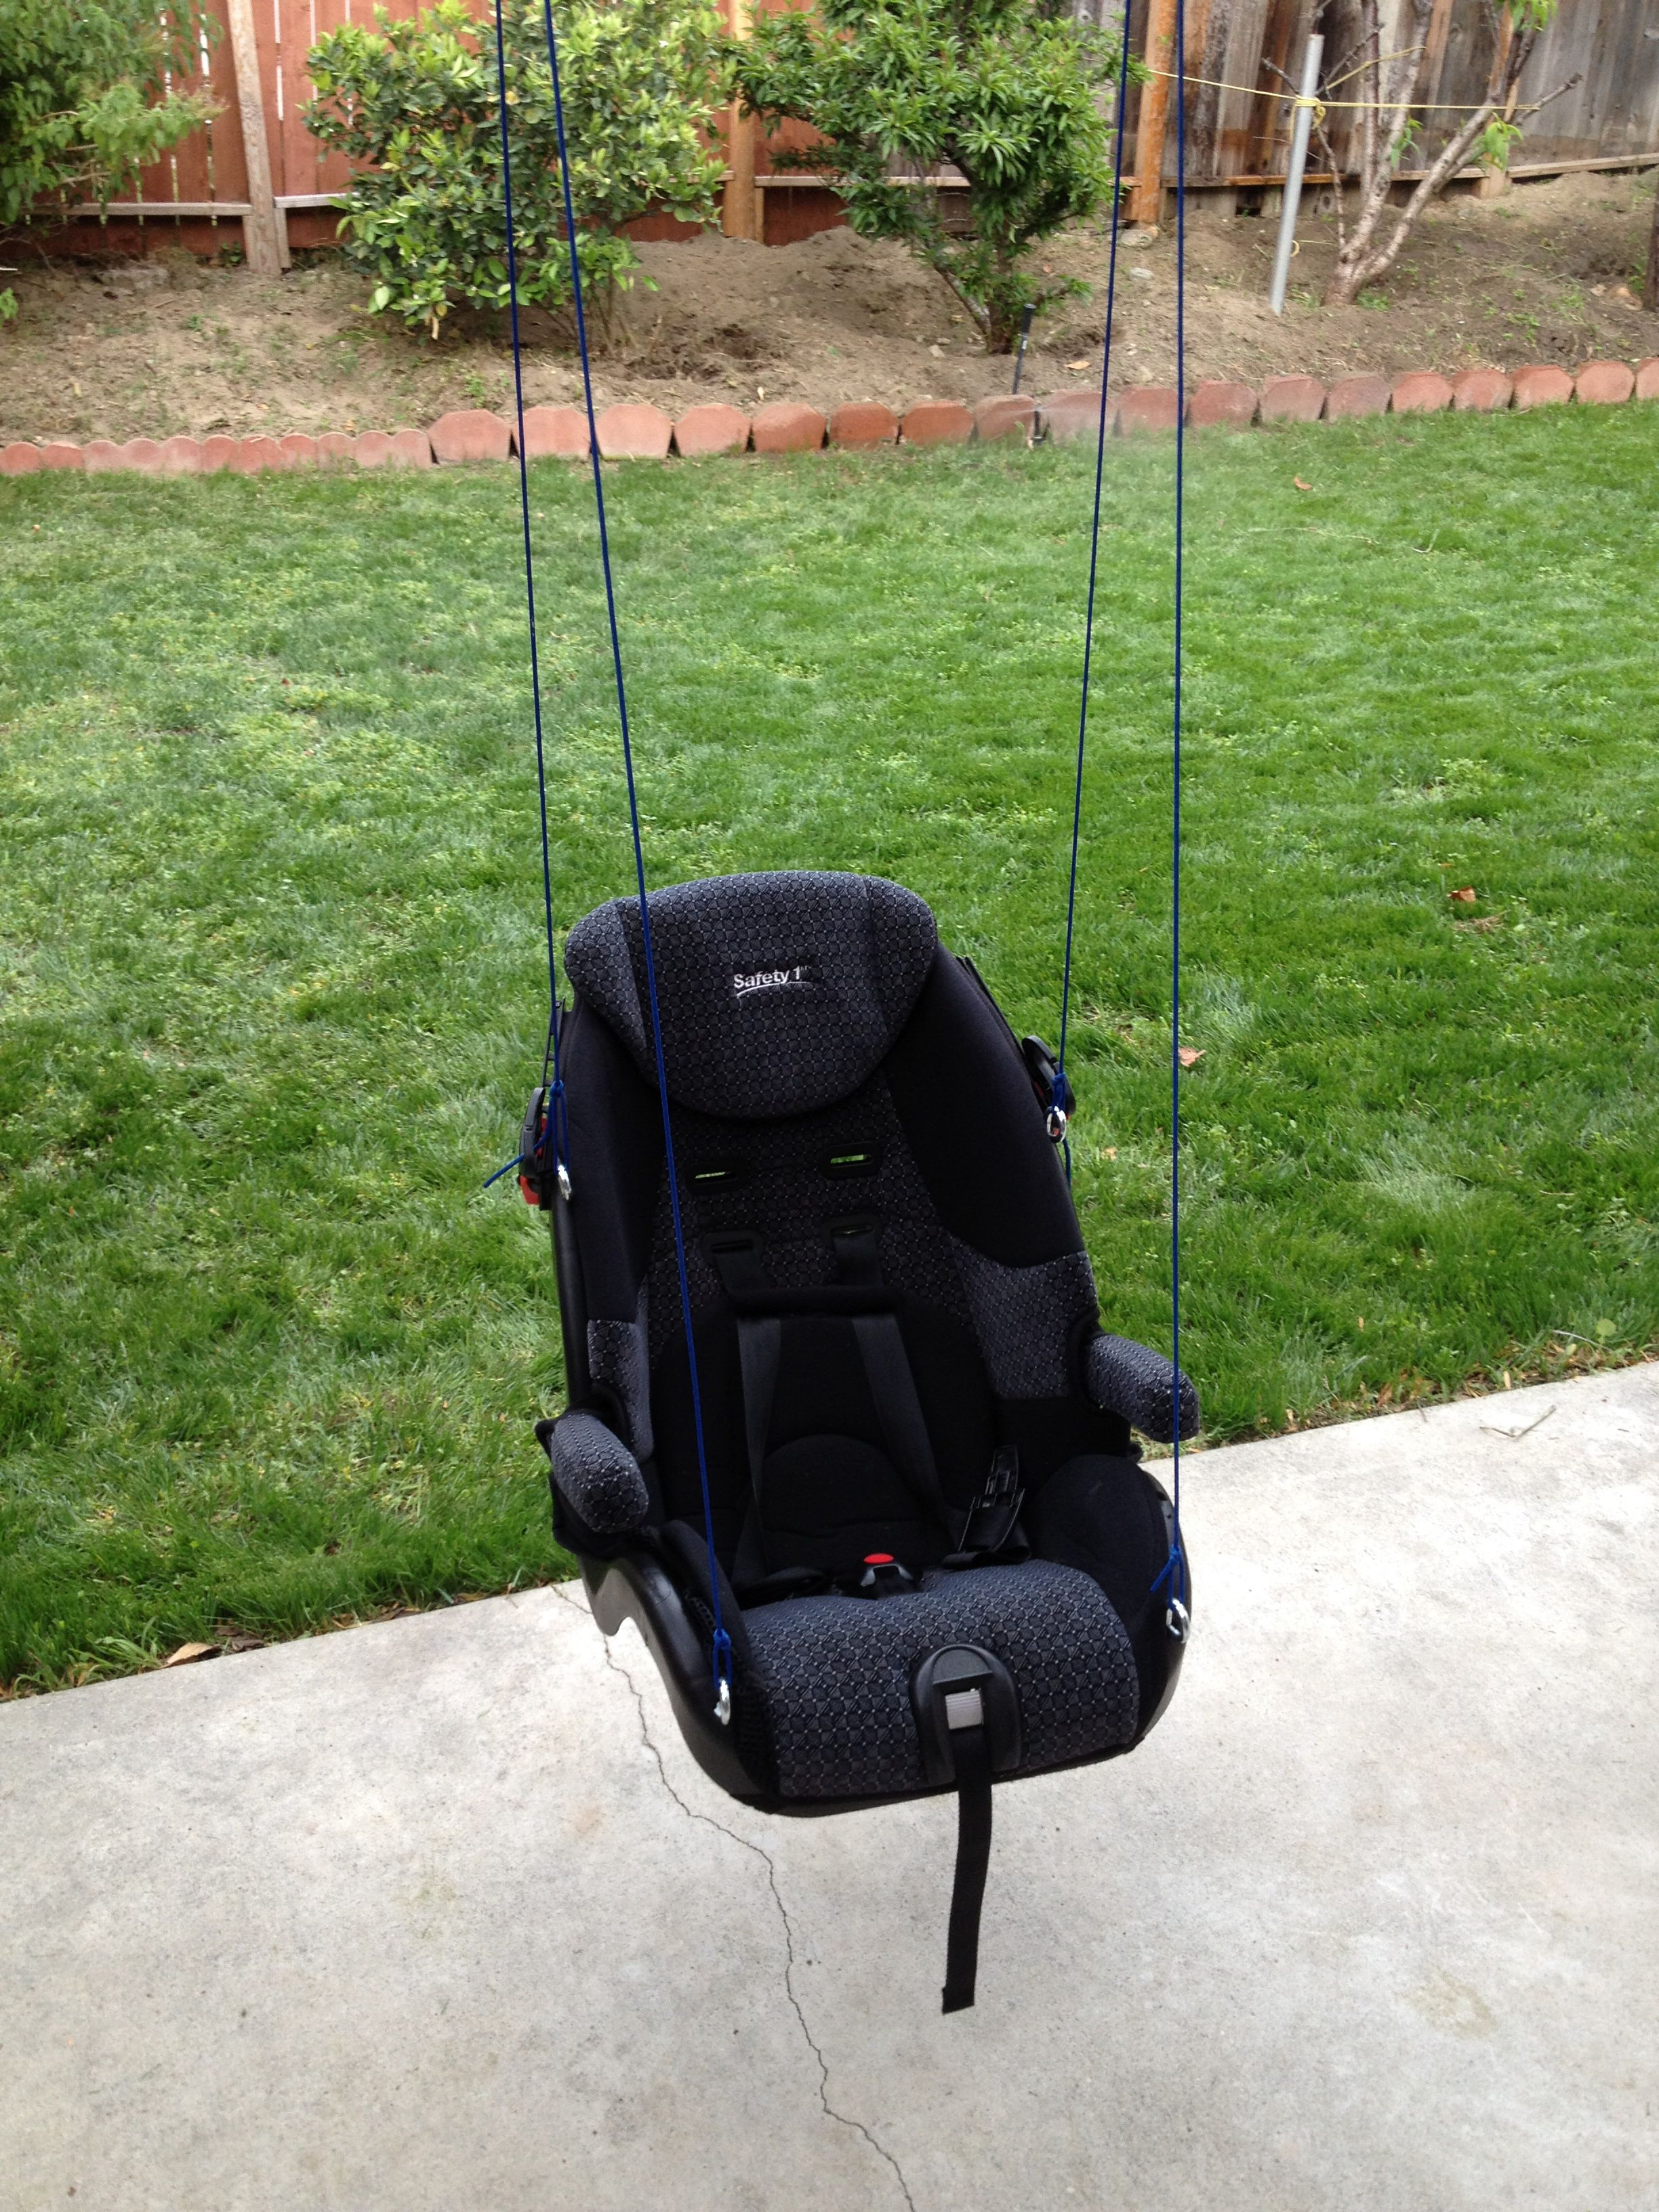 hight resolution of diy car seat upcycle diy baby swing outdoor awesome idea with 5 point harness